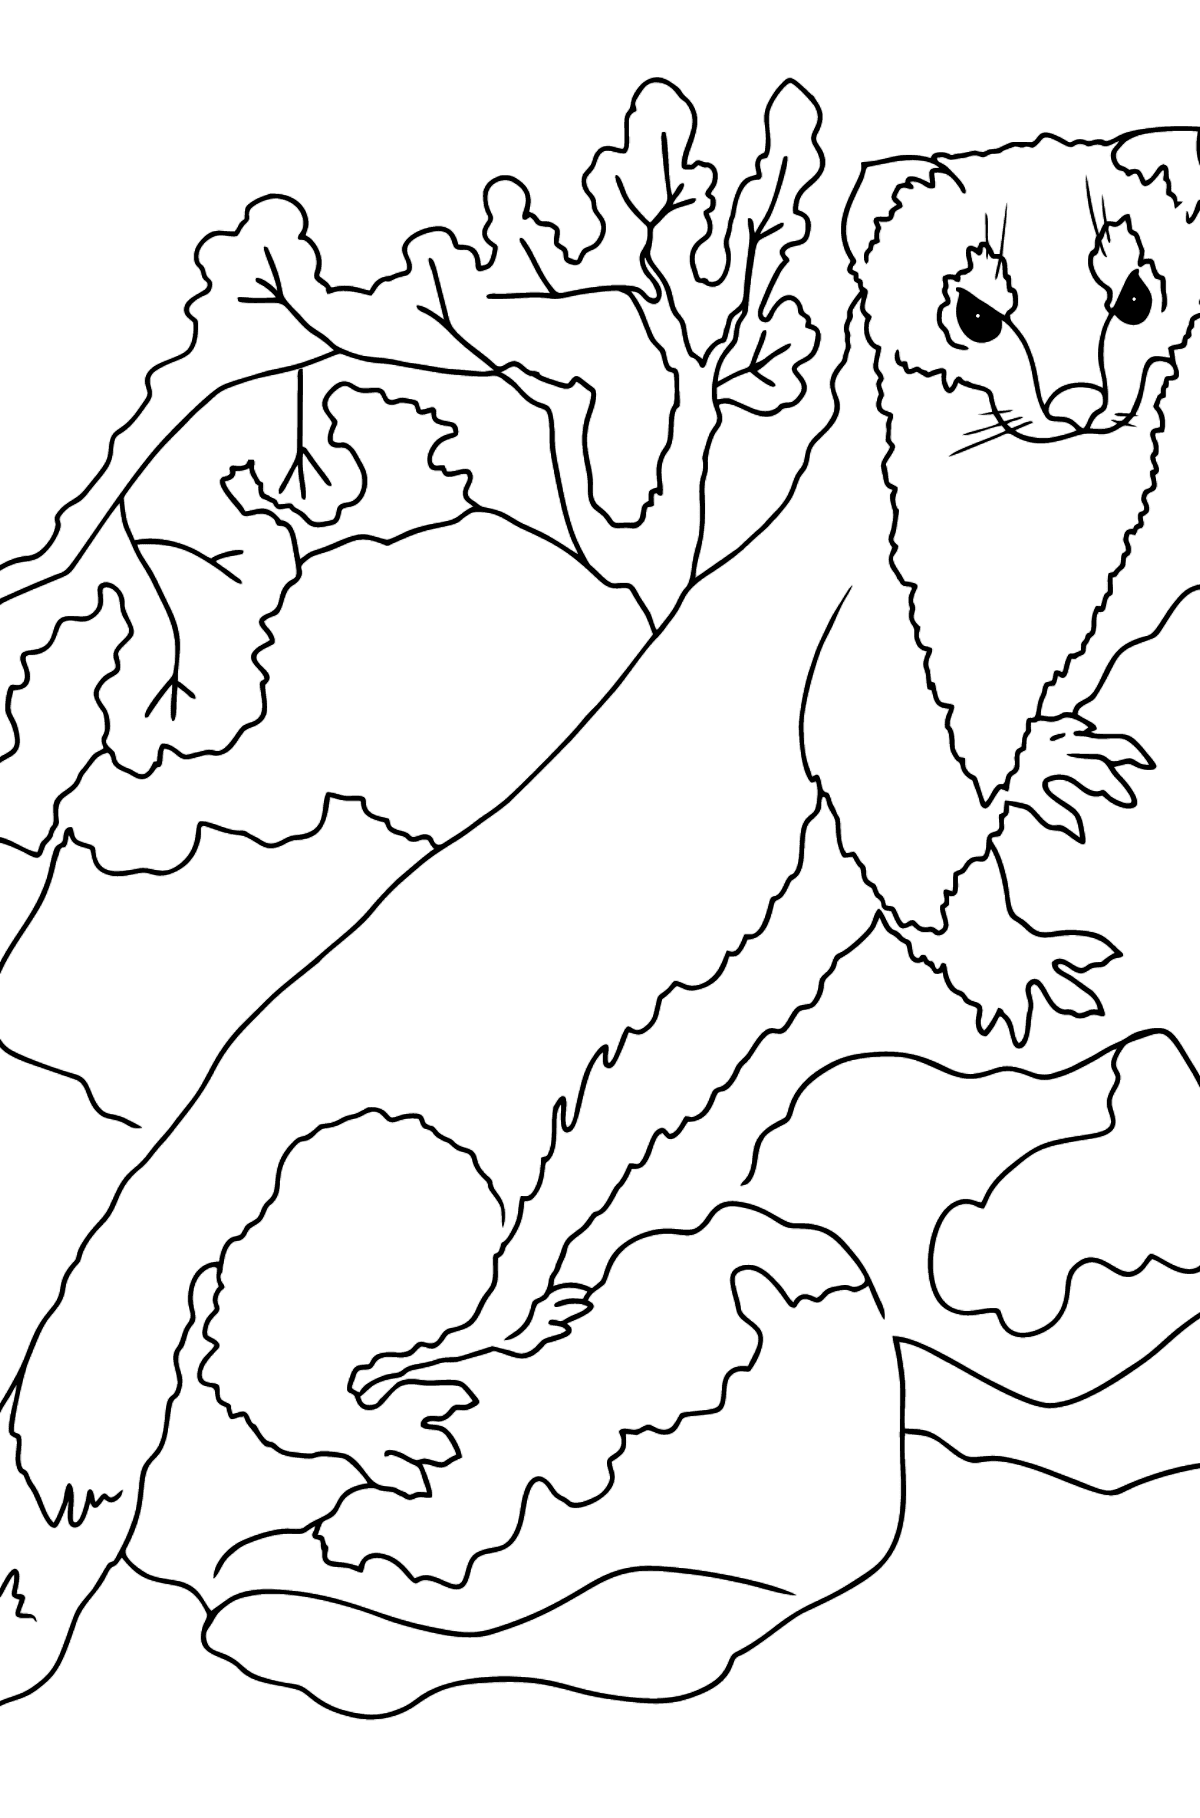 Coloring Page - An Ermine - A Small Predator - Coloring Pages for Kids